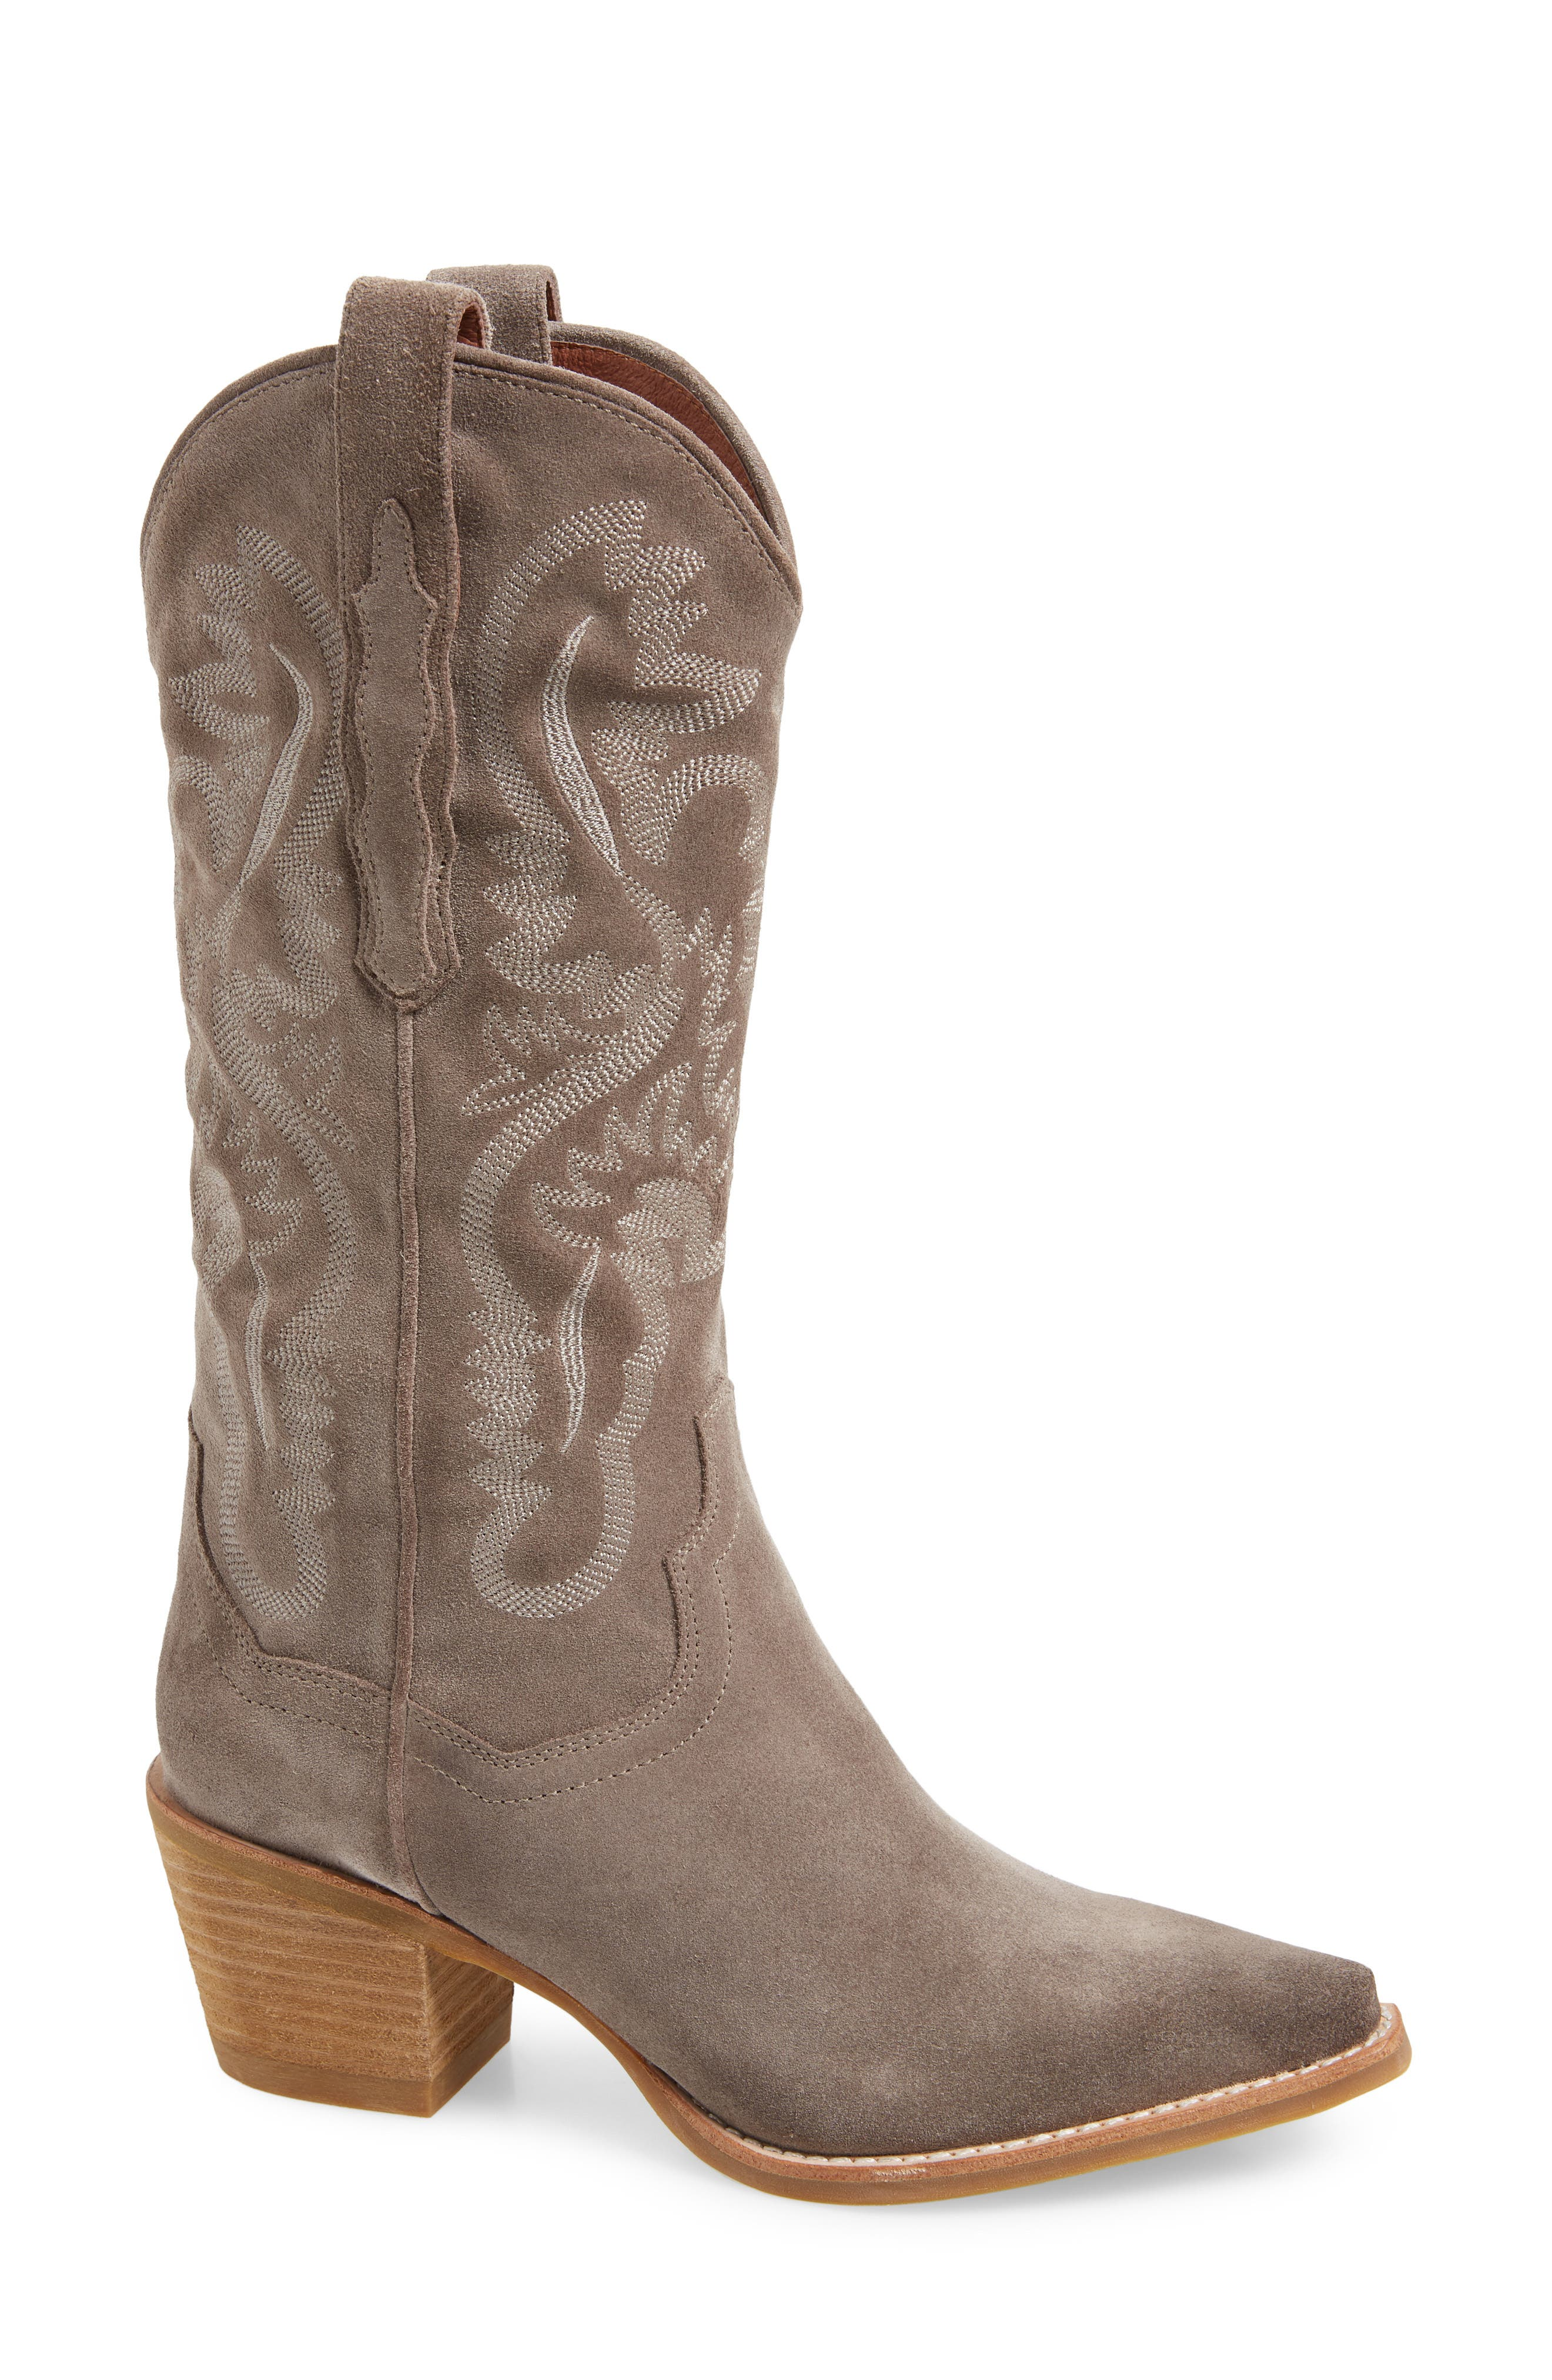 Dagget Western Boot,                         Main,                         color, TAUPE SUEDE